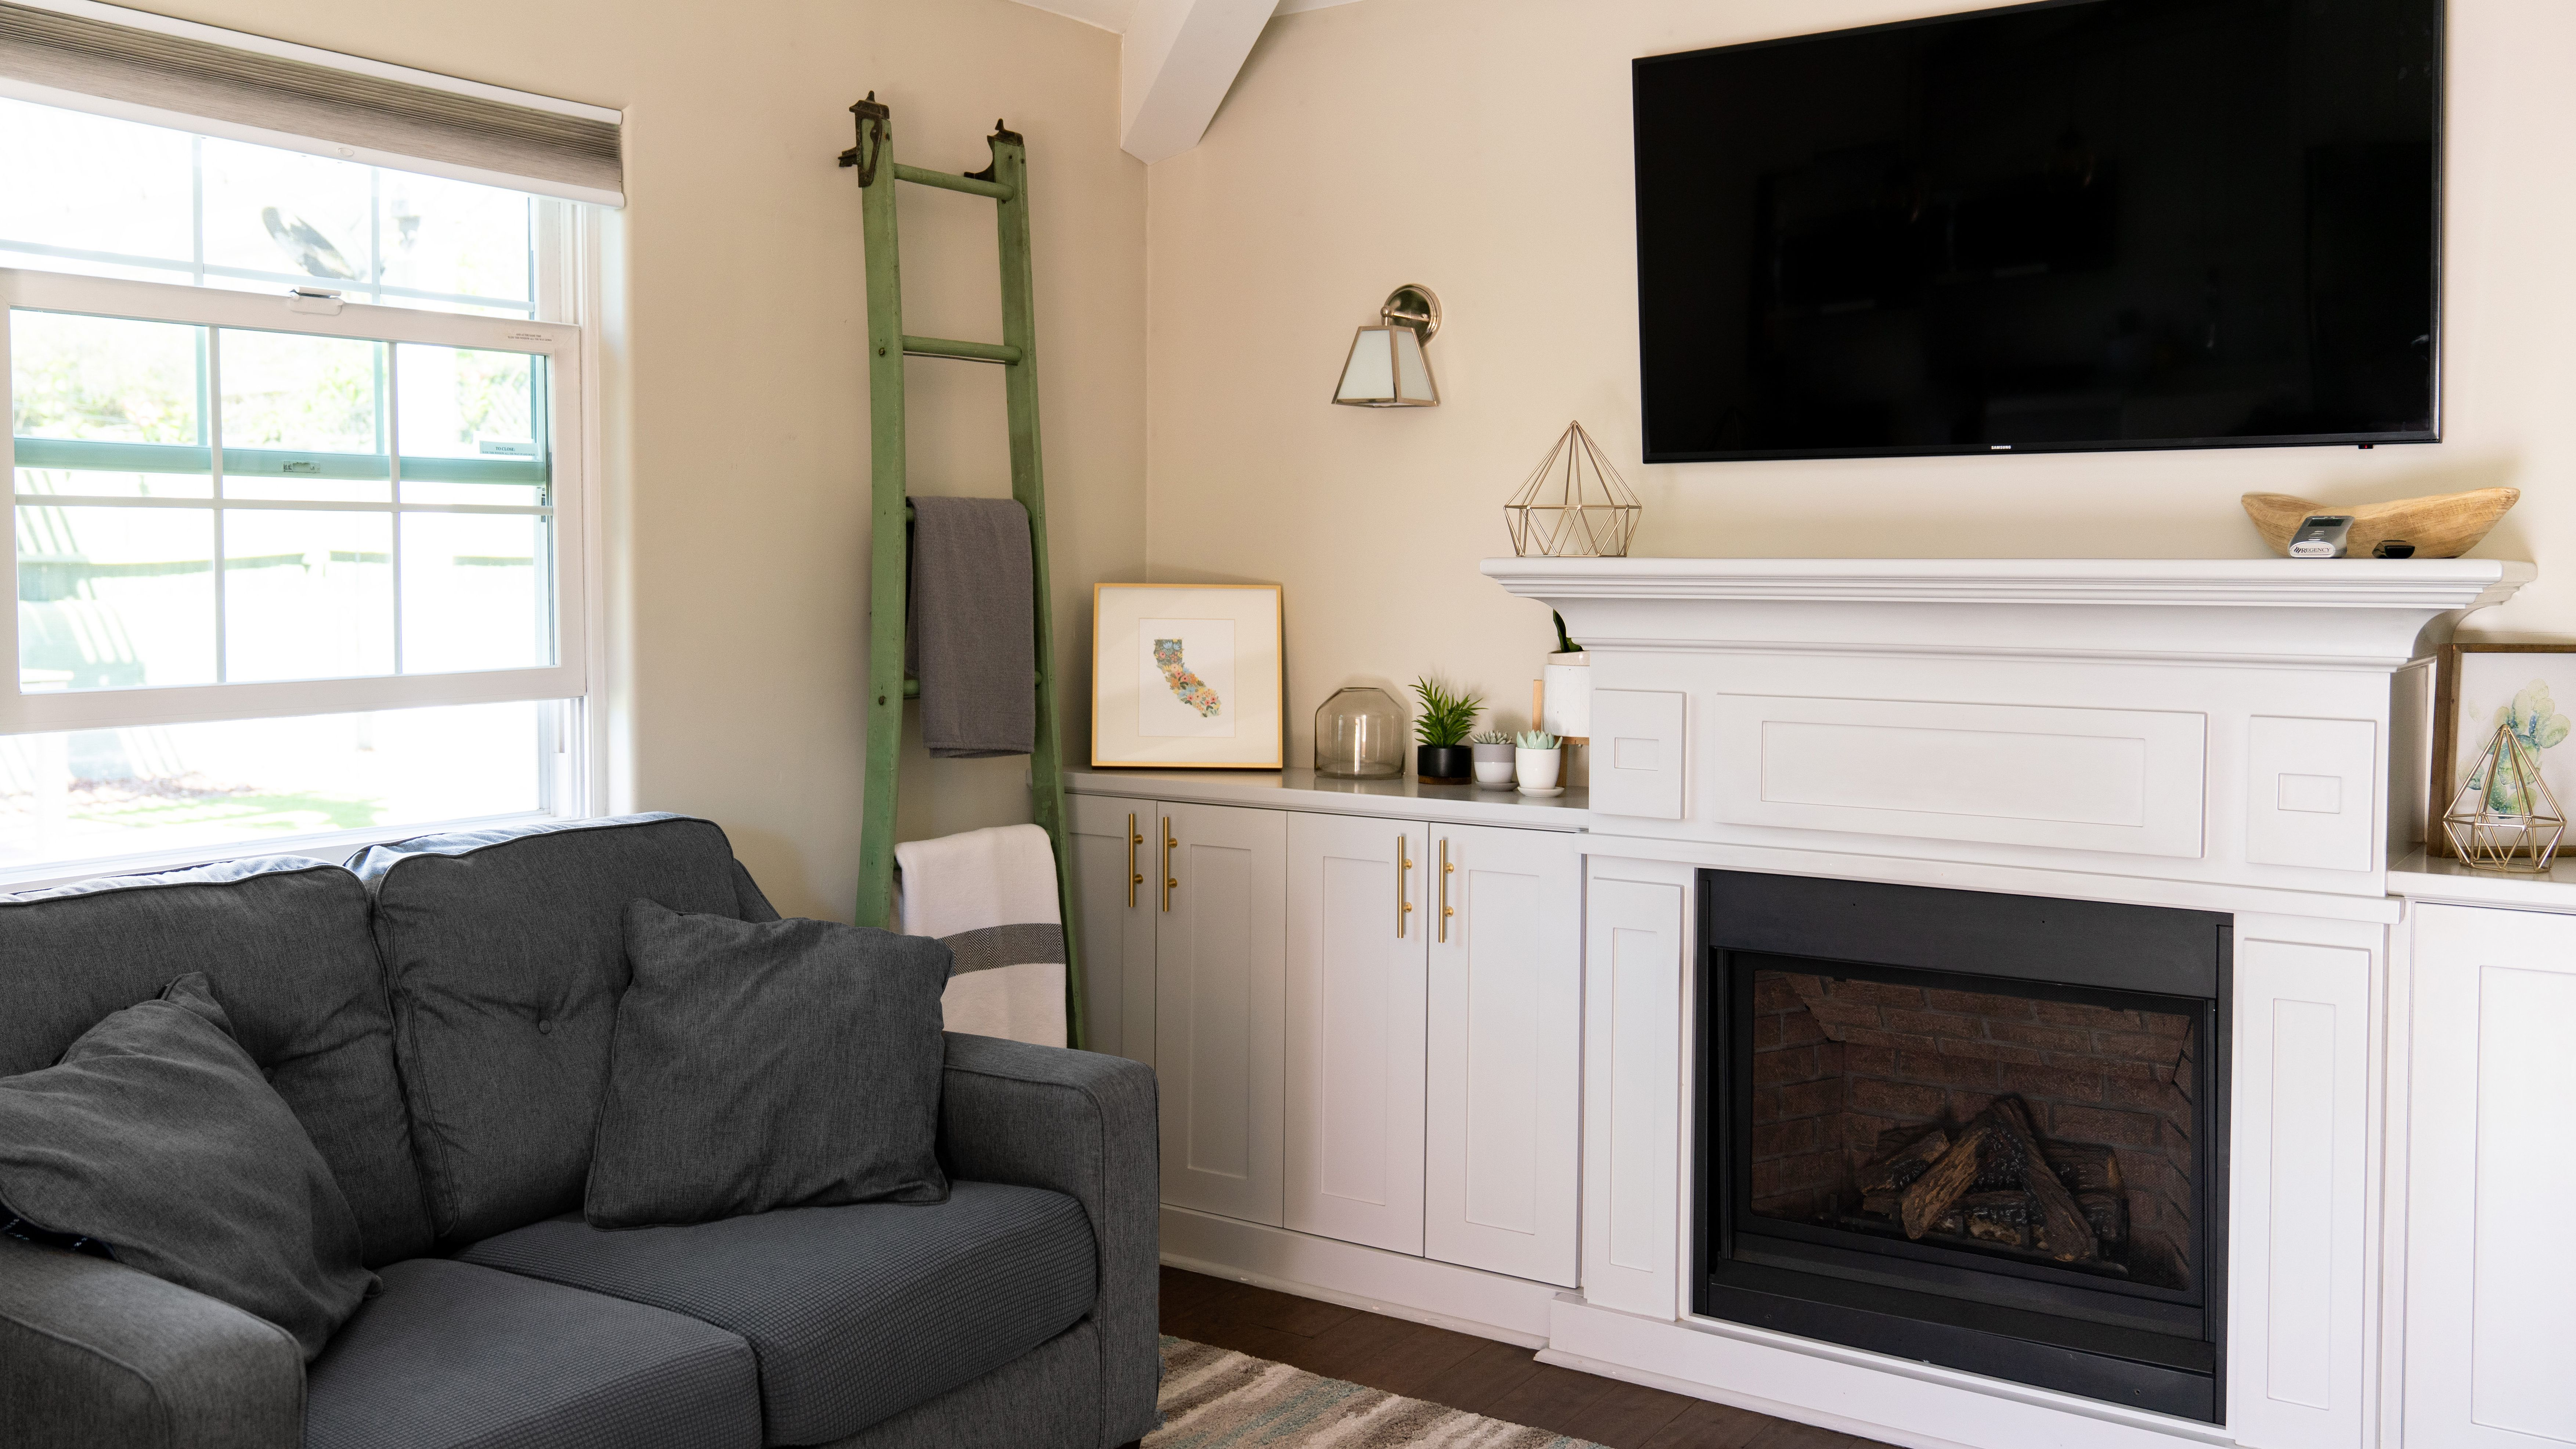 Mount Tv Above Fireplace Should You Do This